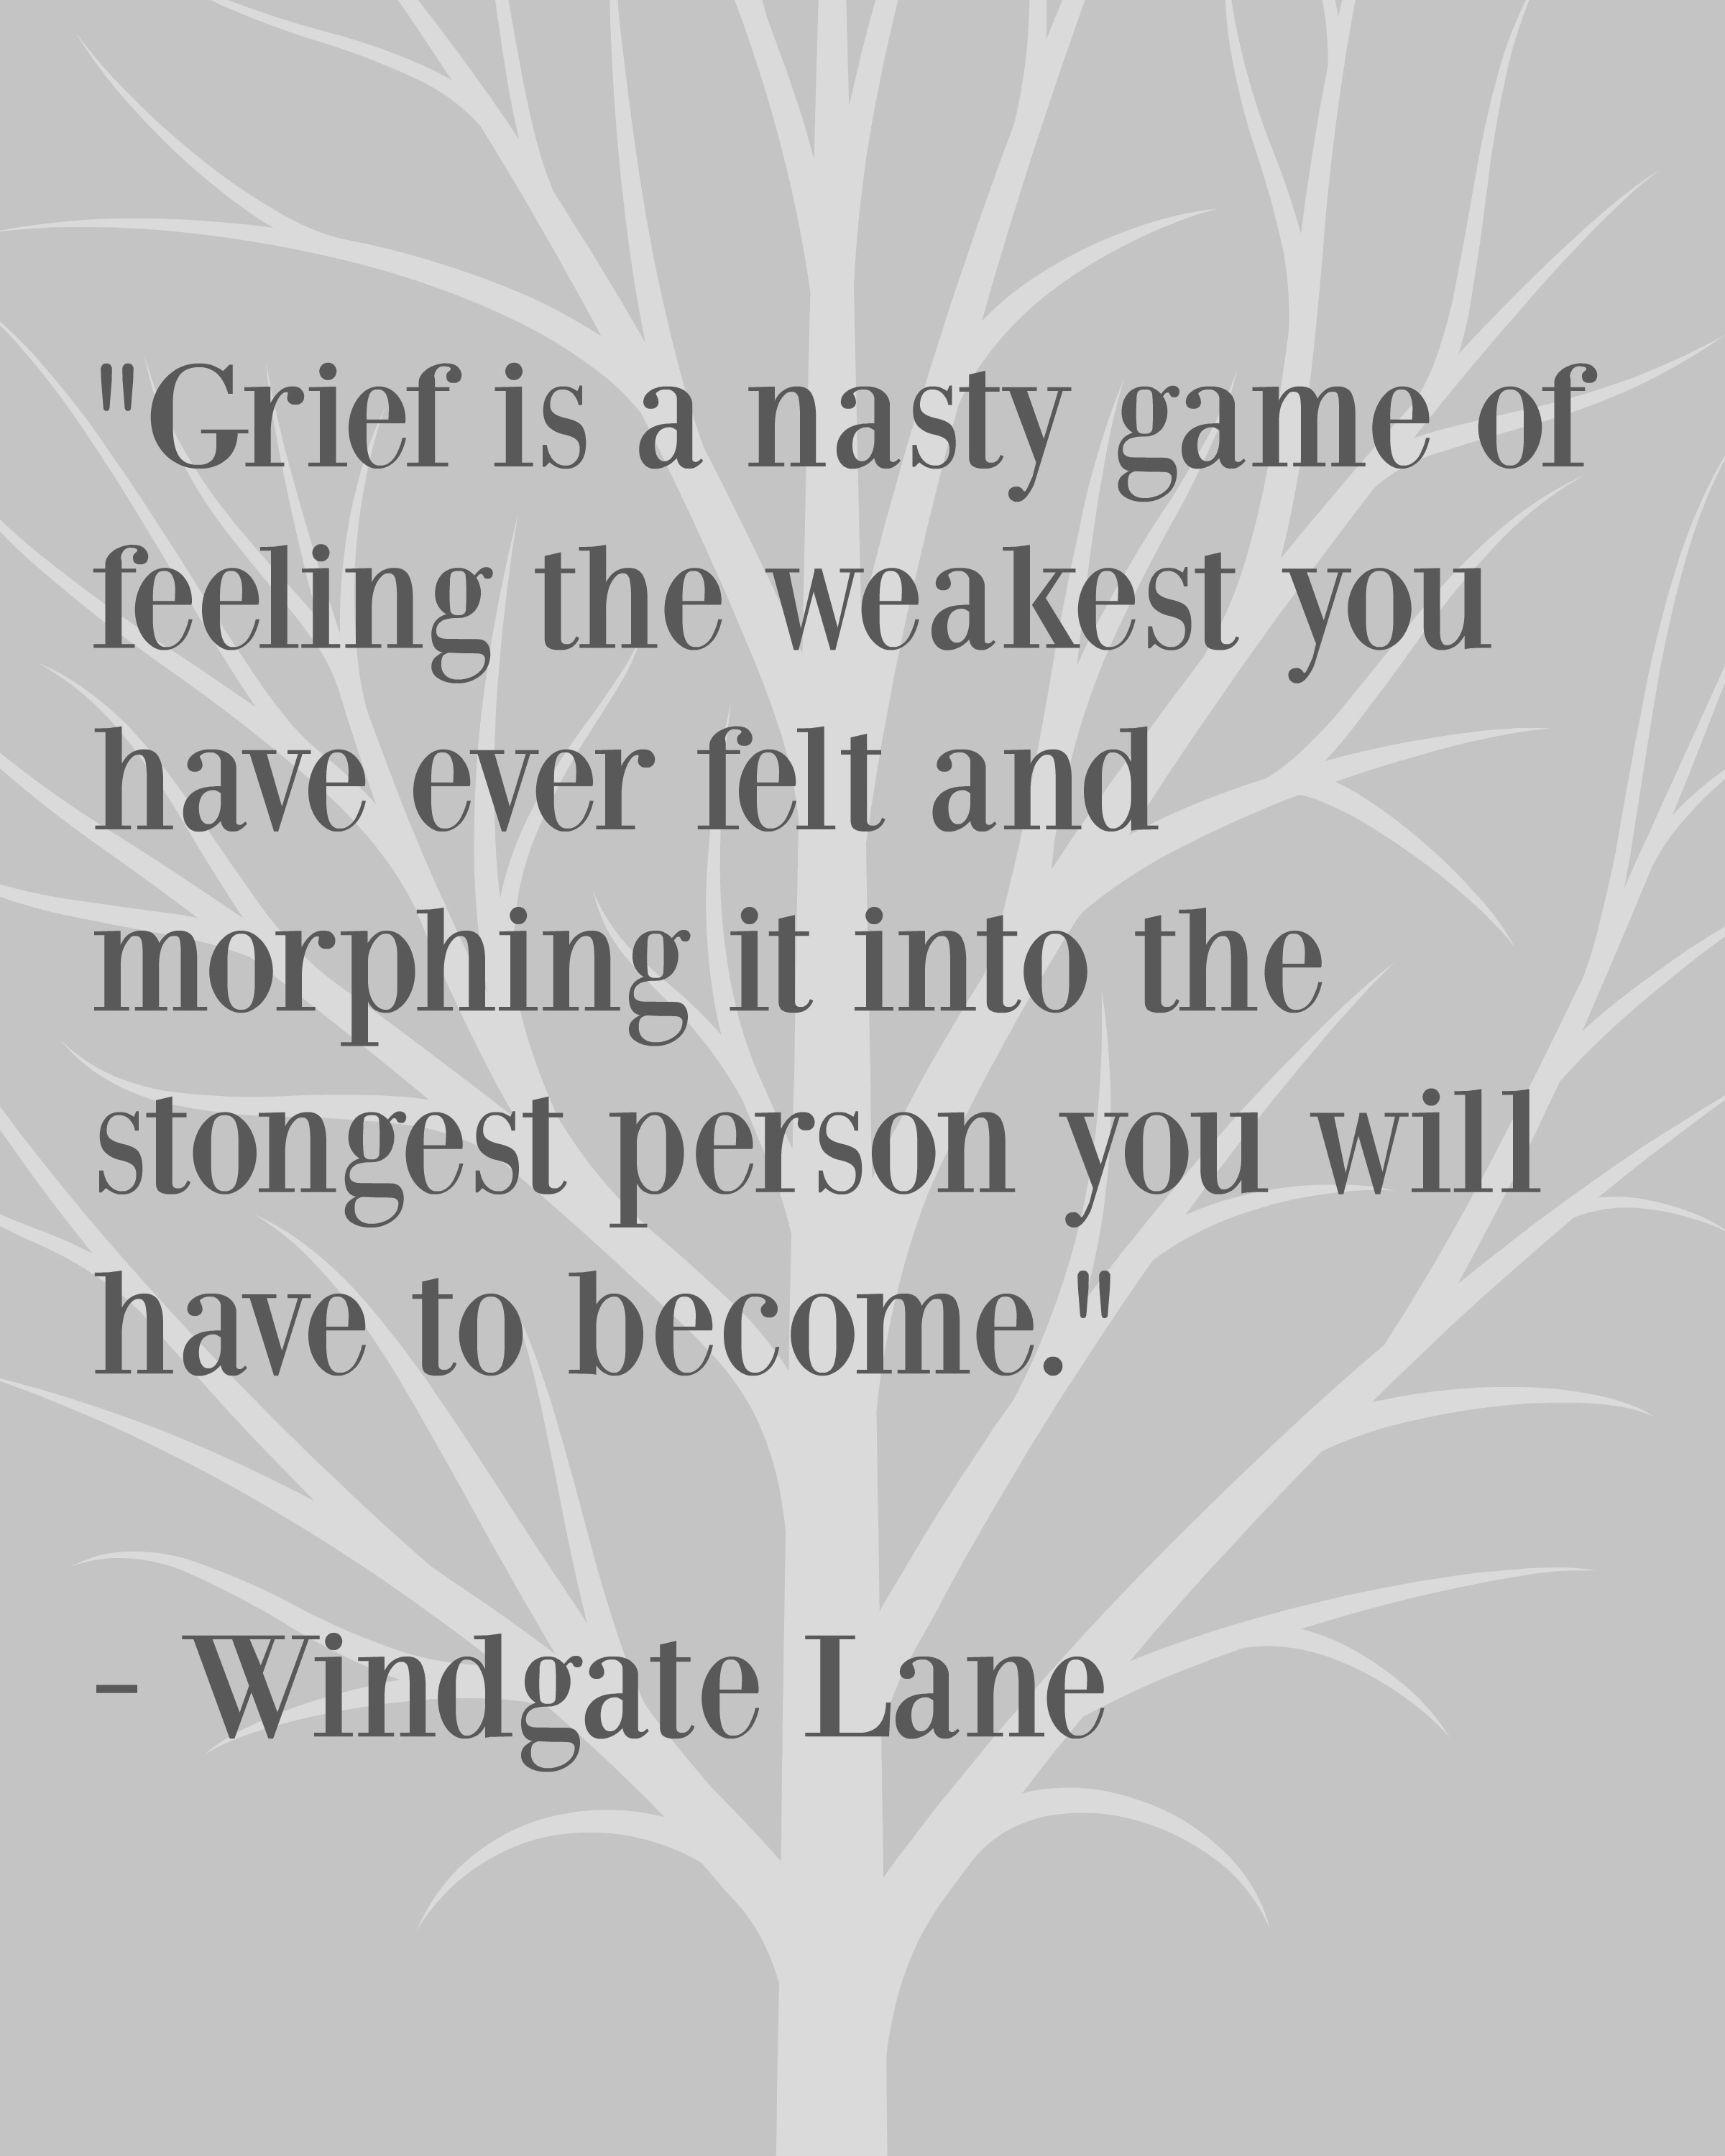 Quotes On Loss: Dreams After Grief